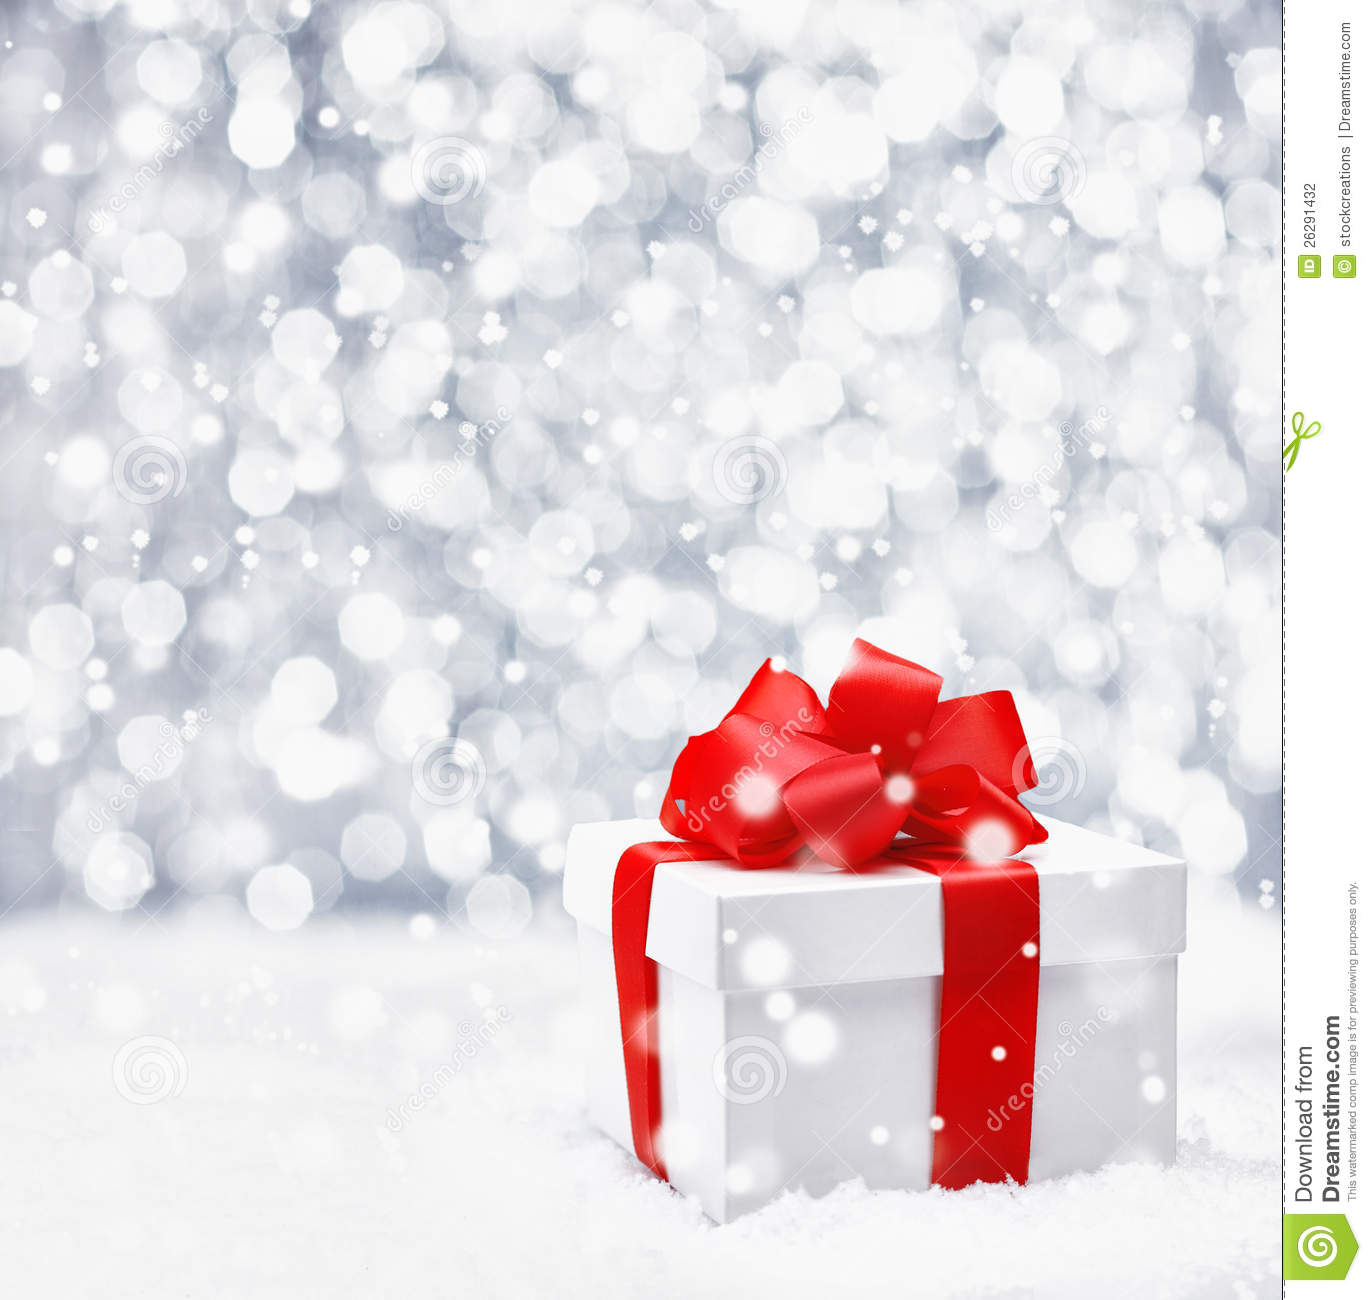 Festive Christmas Gift In Snow Stock Photo - Image of gift, object ...